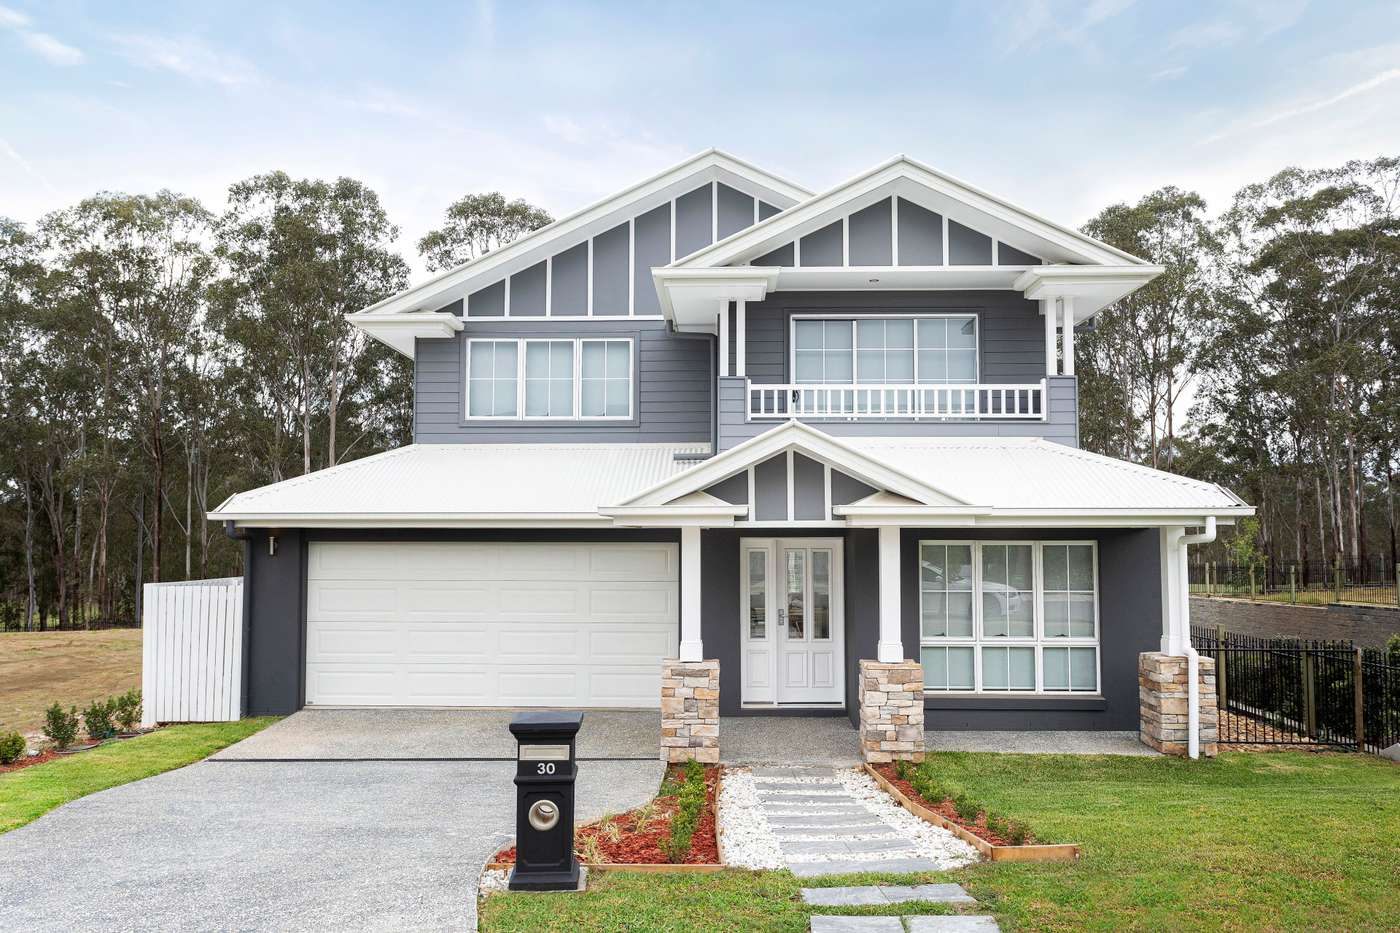 Main view of Homely house listing, 30 Turnberry Way, Brookwater, QLD 4300